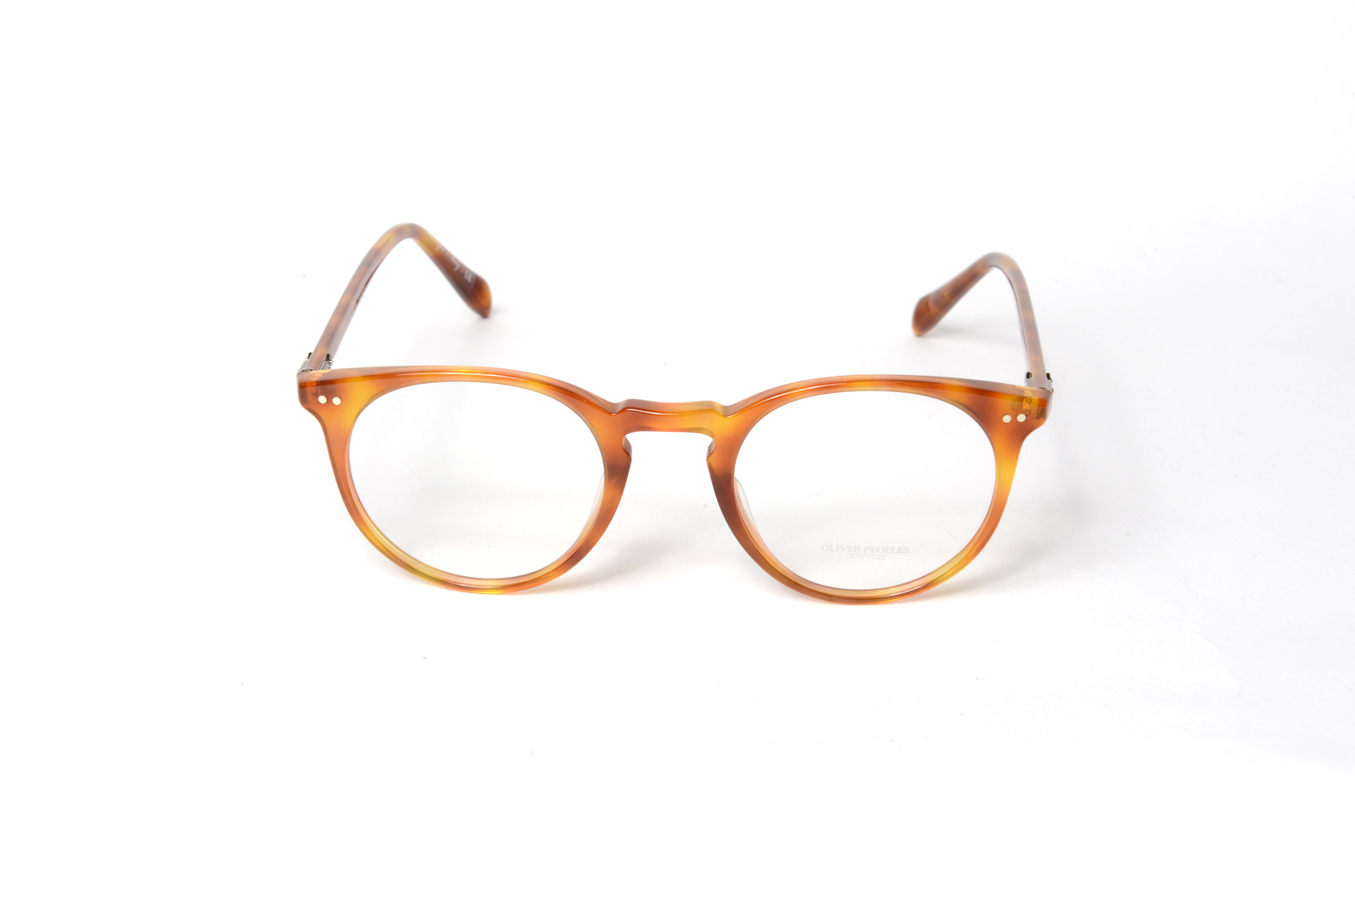 edd81ab035 Oliver Peoples Sir o malley - Piccadilly Opticians -